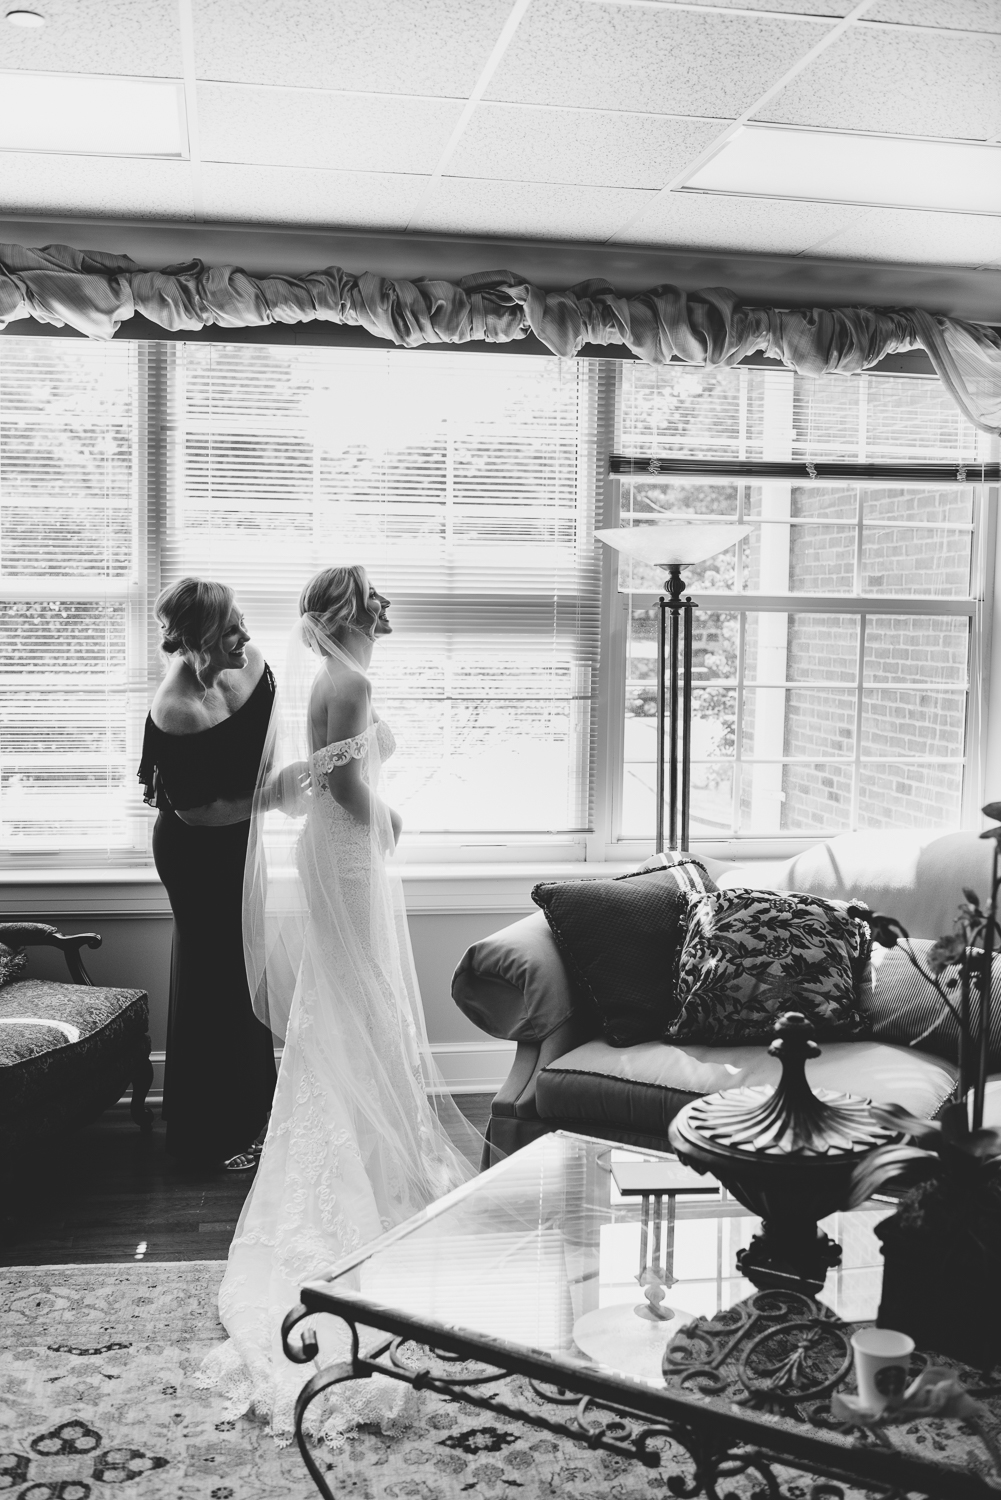 Memphis wedding photographer ALN Images captures Ramsay Laughlin with her mom, Paige before the ceremony.